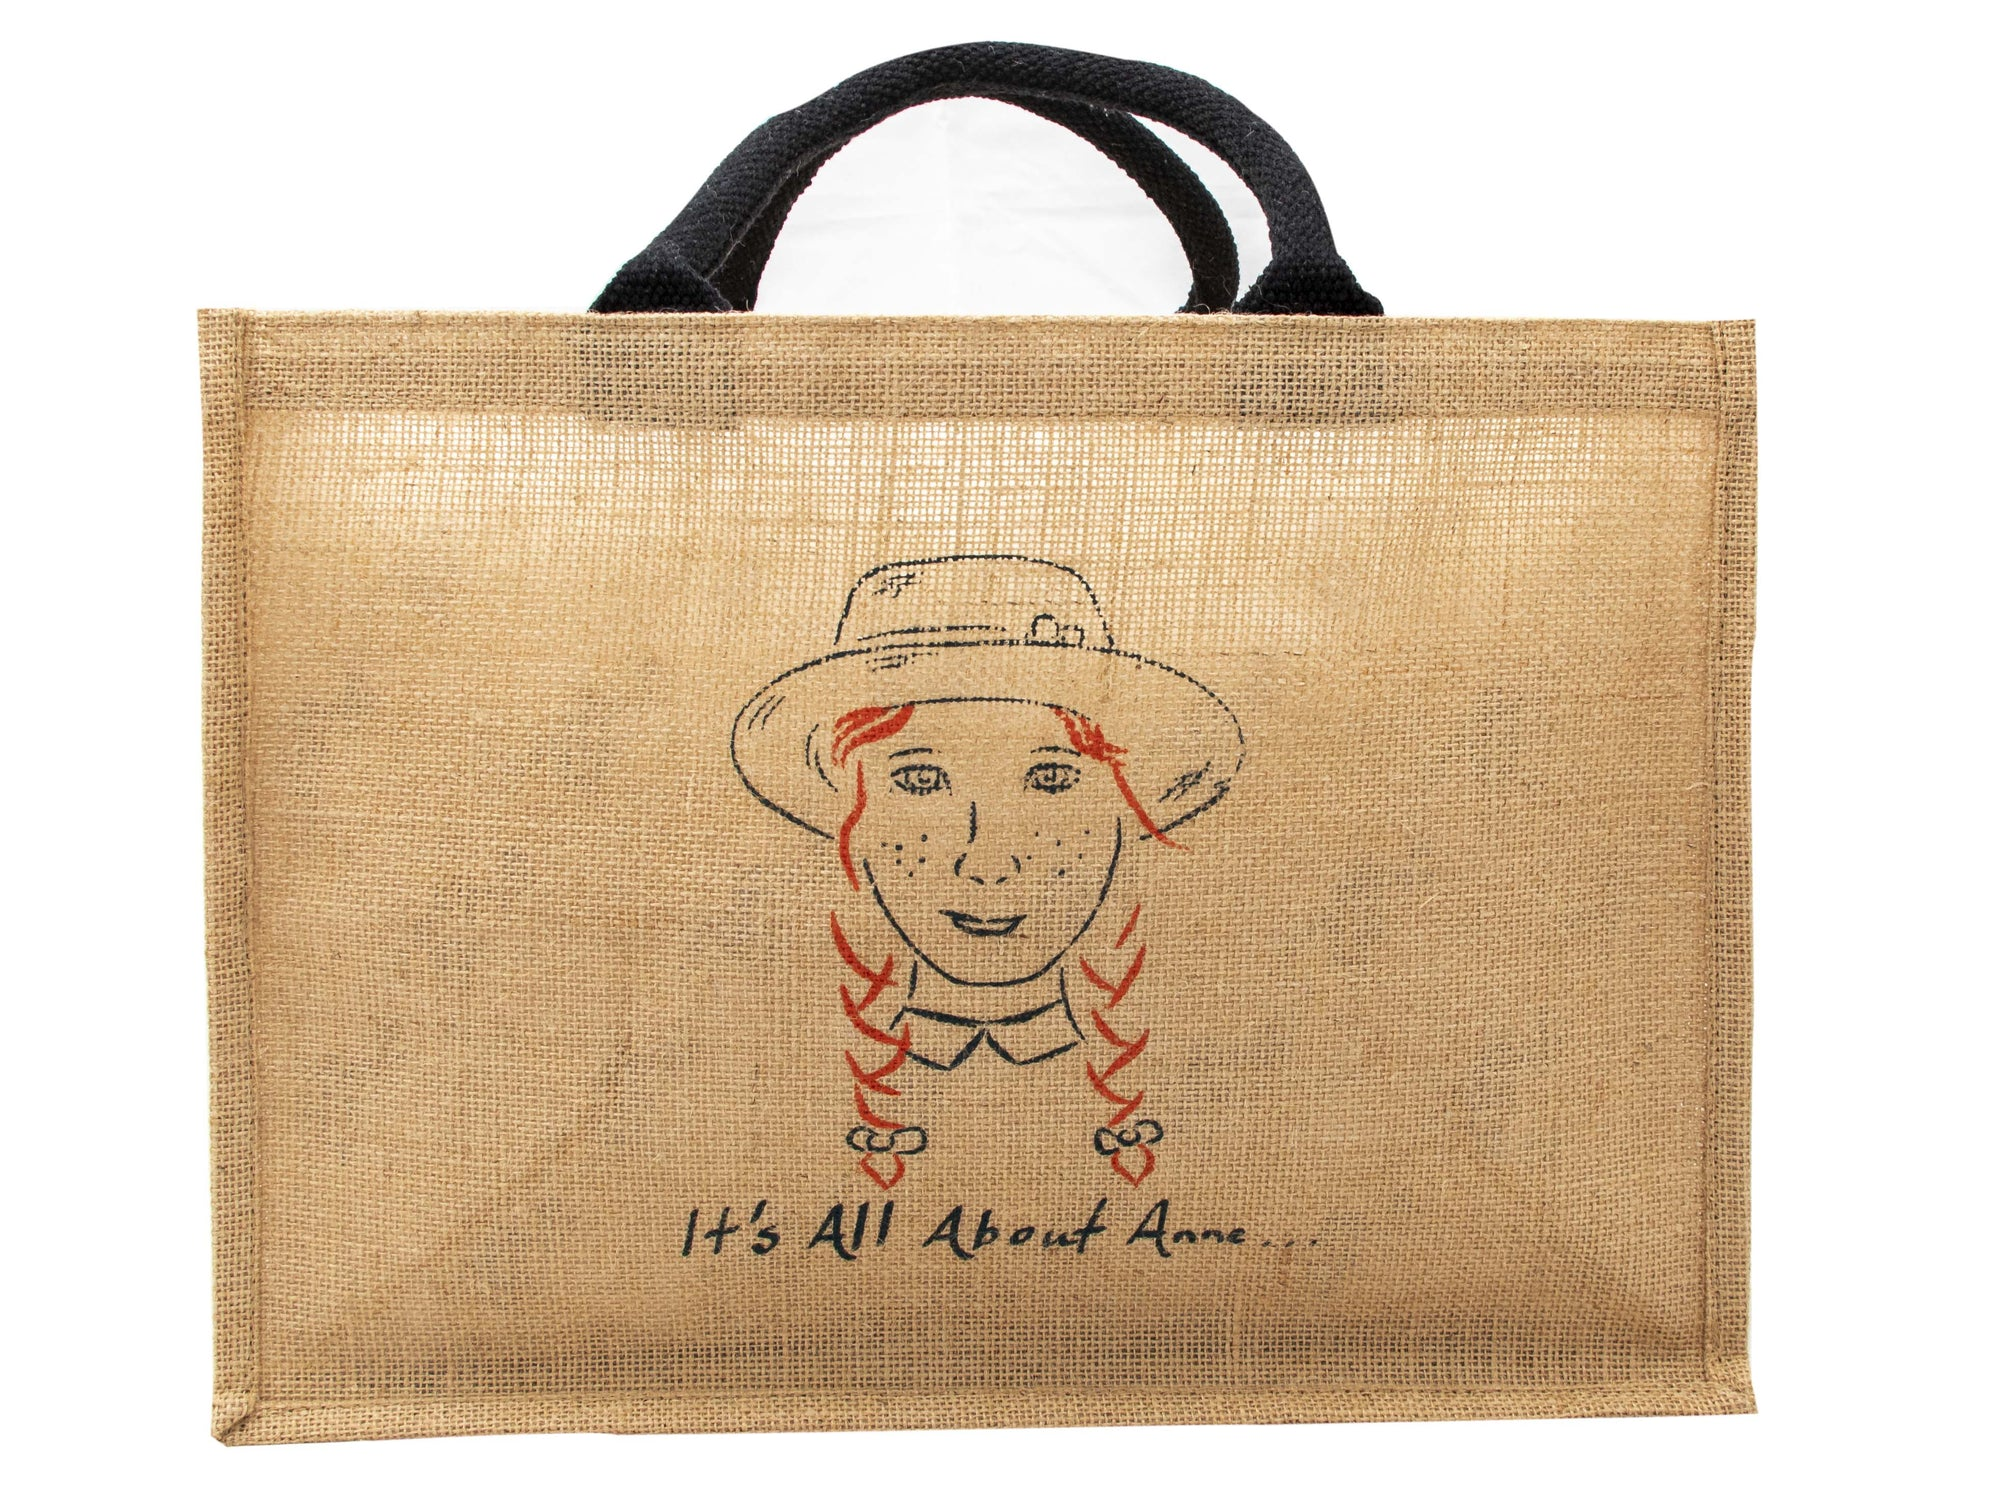 'It's All About Anne' Jute Bag Anne Of Green Gables